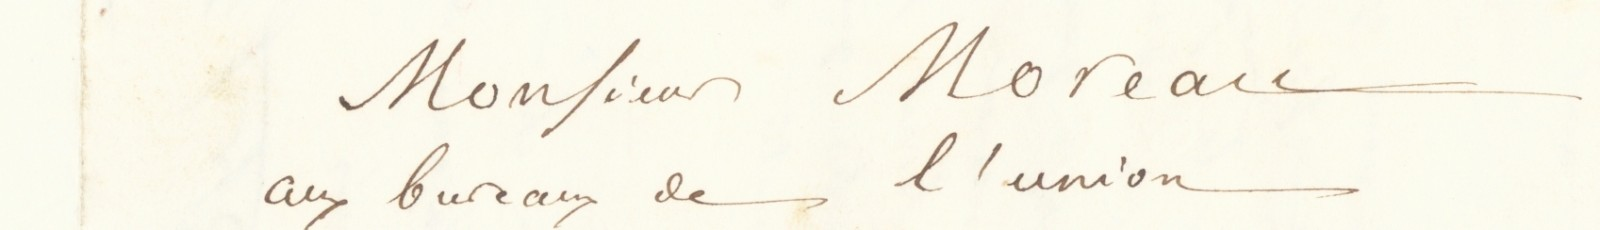 Address of a letter from Ferdinand Béchart to Célestin Moreau (Ms 4652, file Béchart)